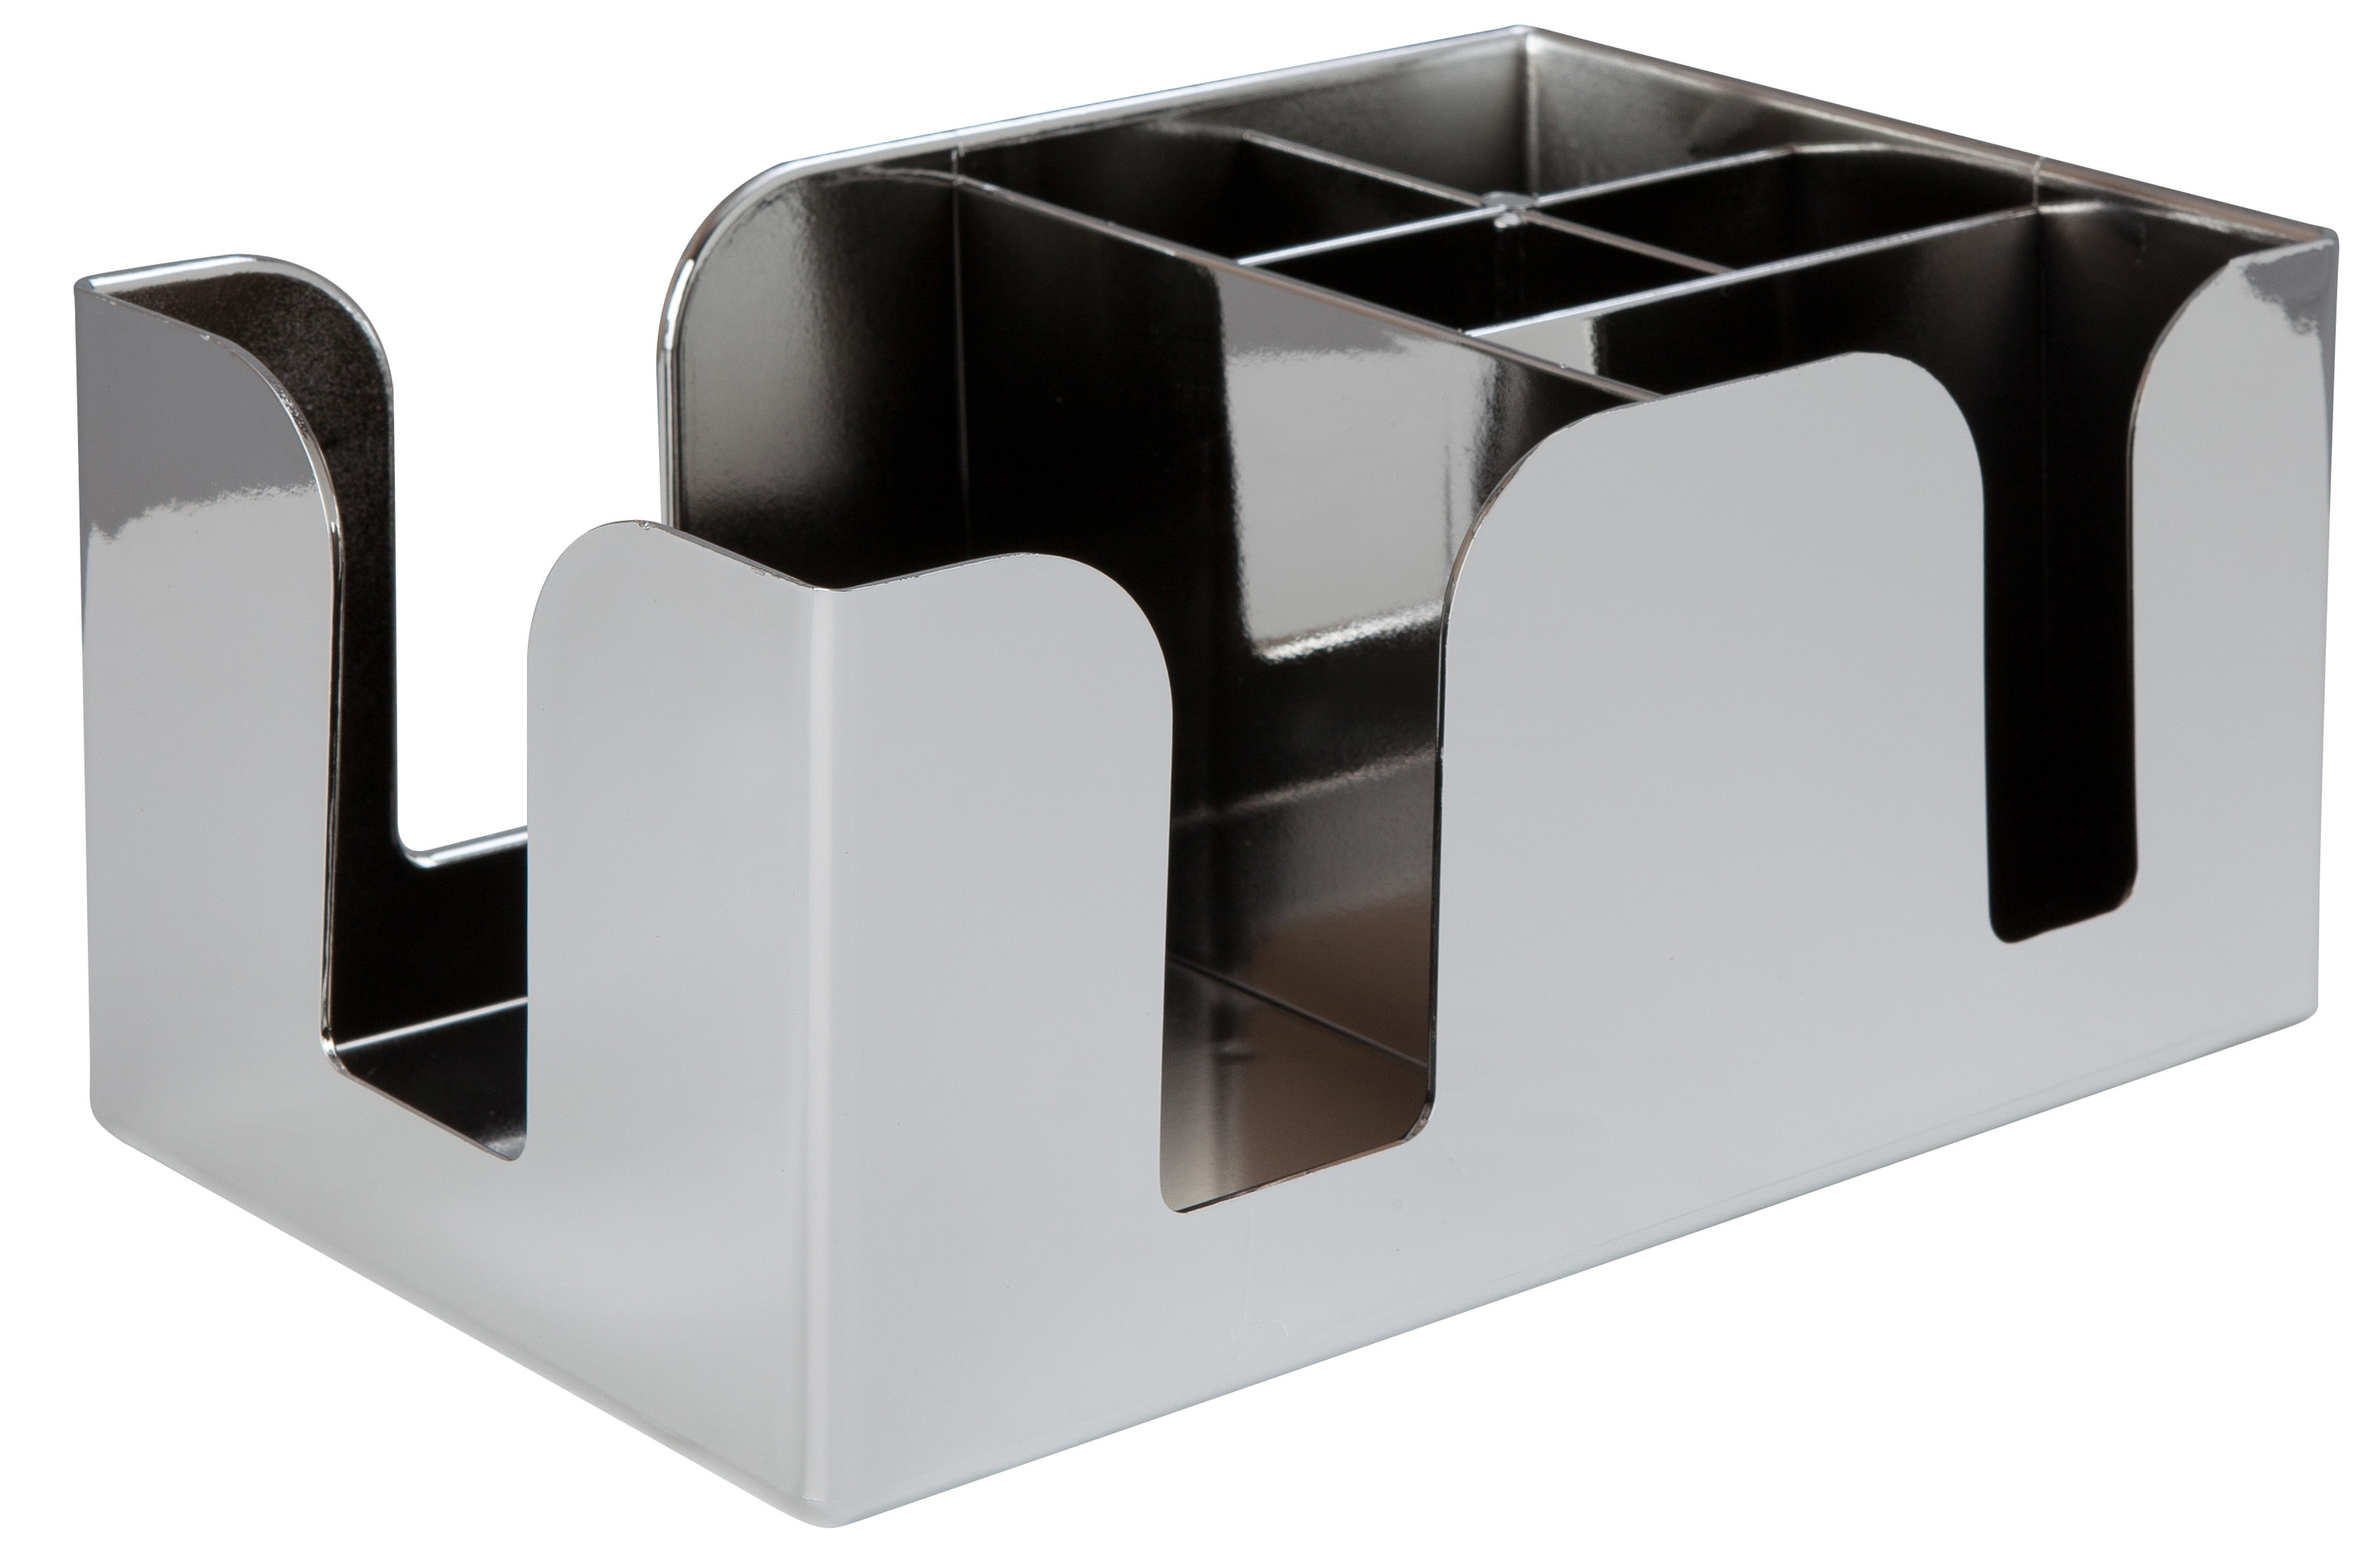 Bar Caddy - Chrome Plated